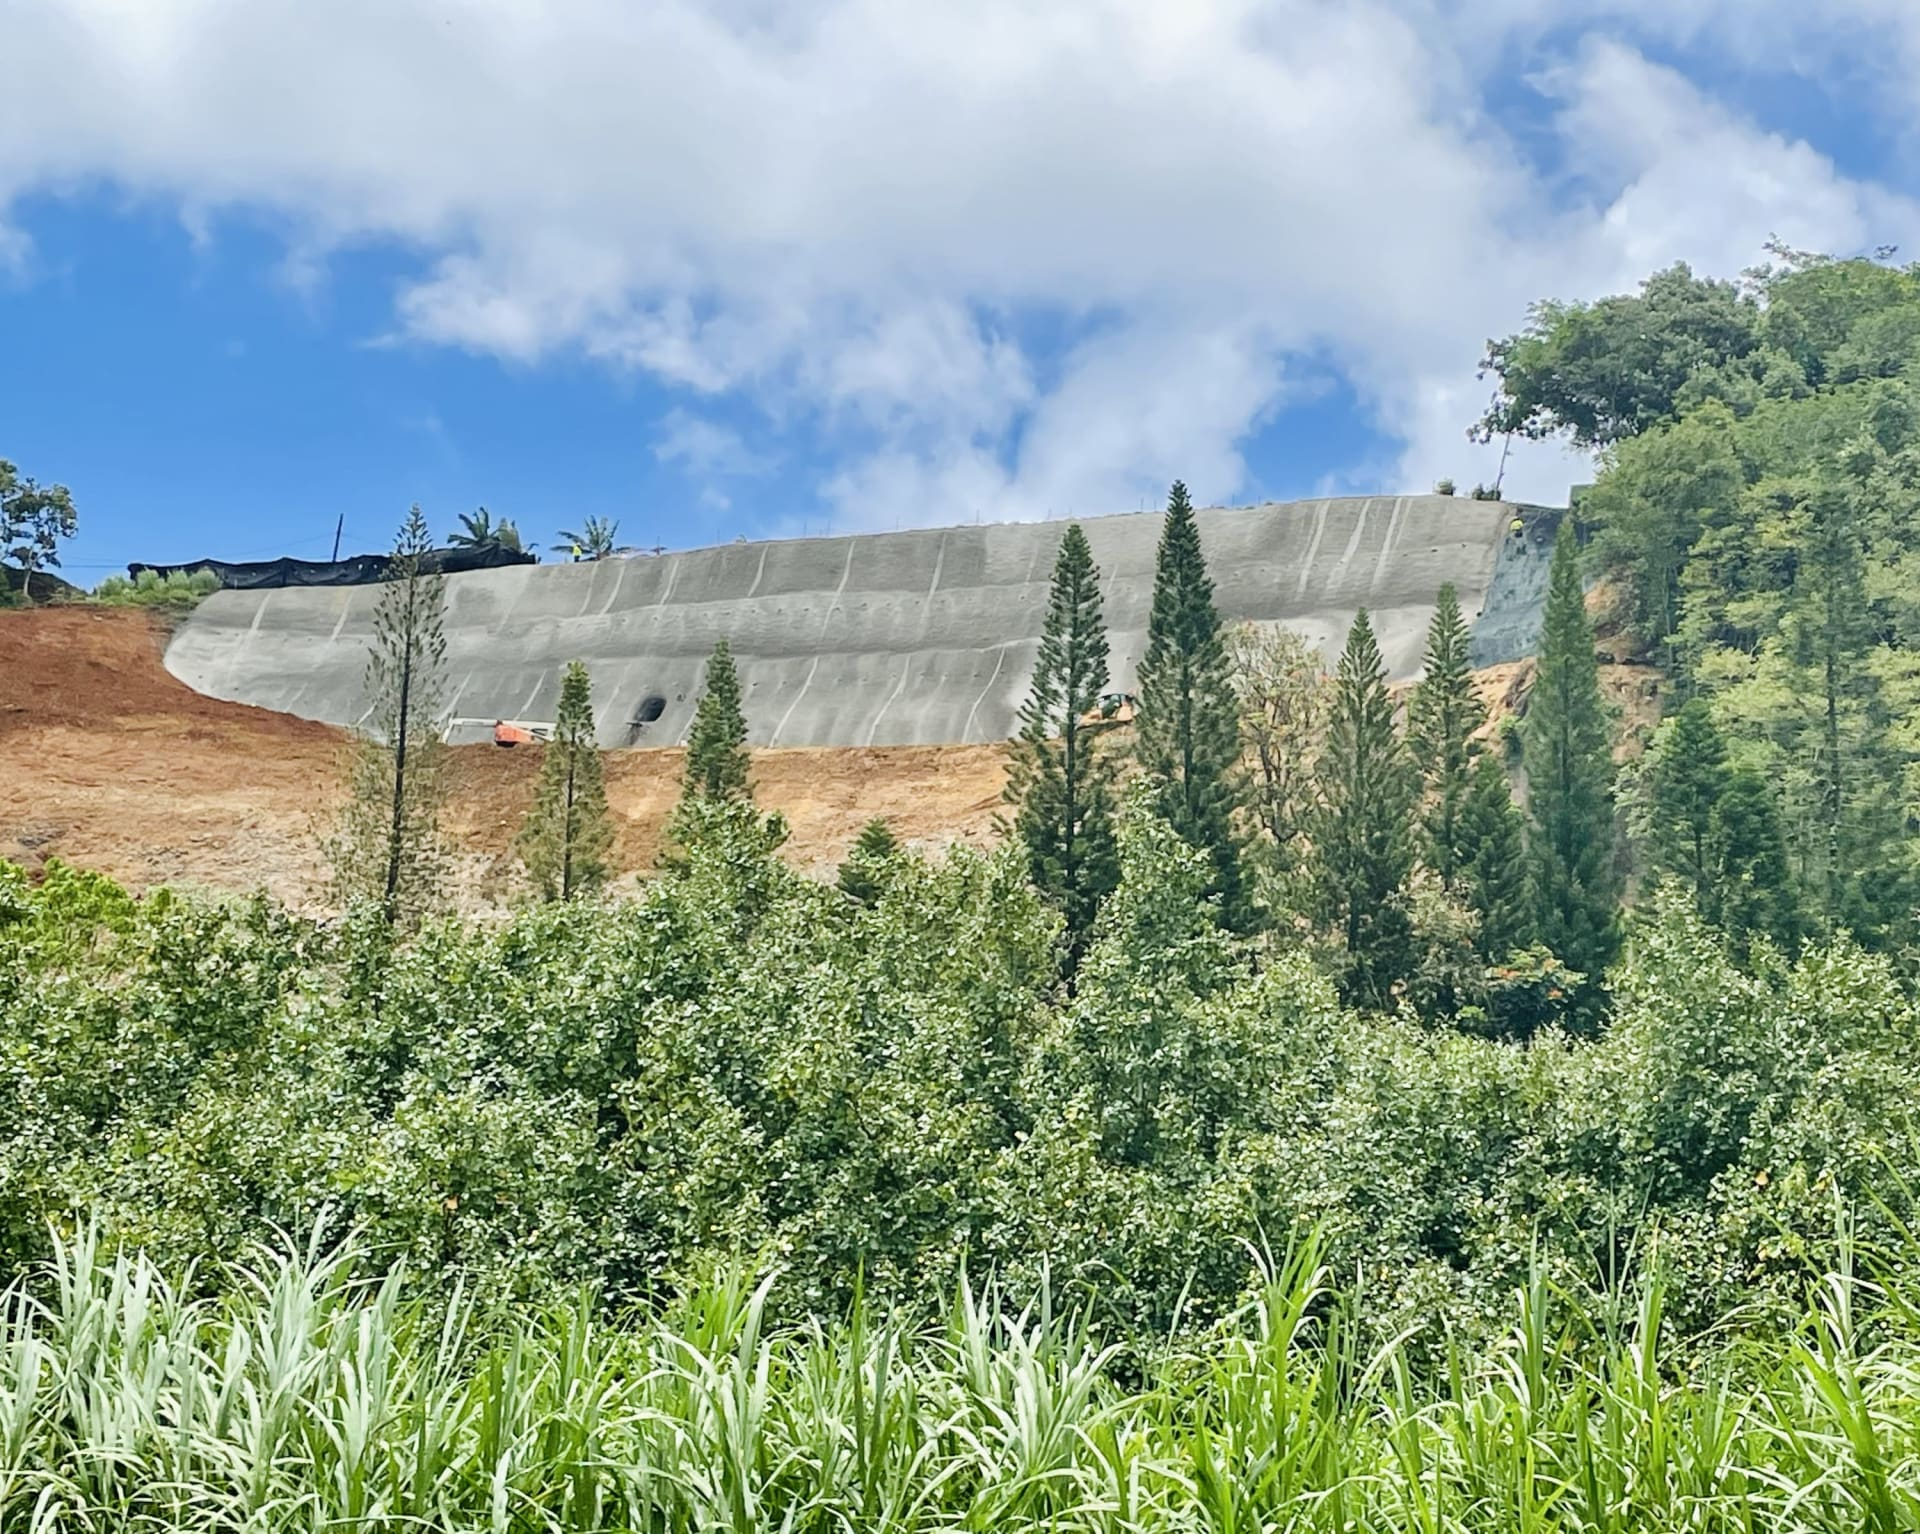 Hanalei Hill Repairs and North Shore Convoy Update